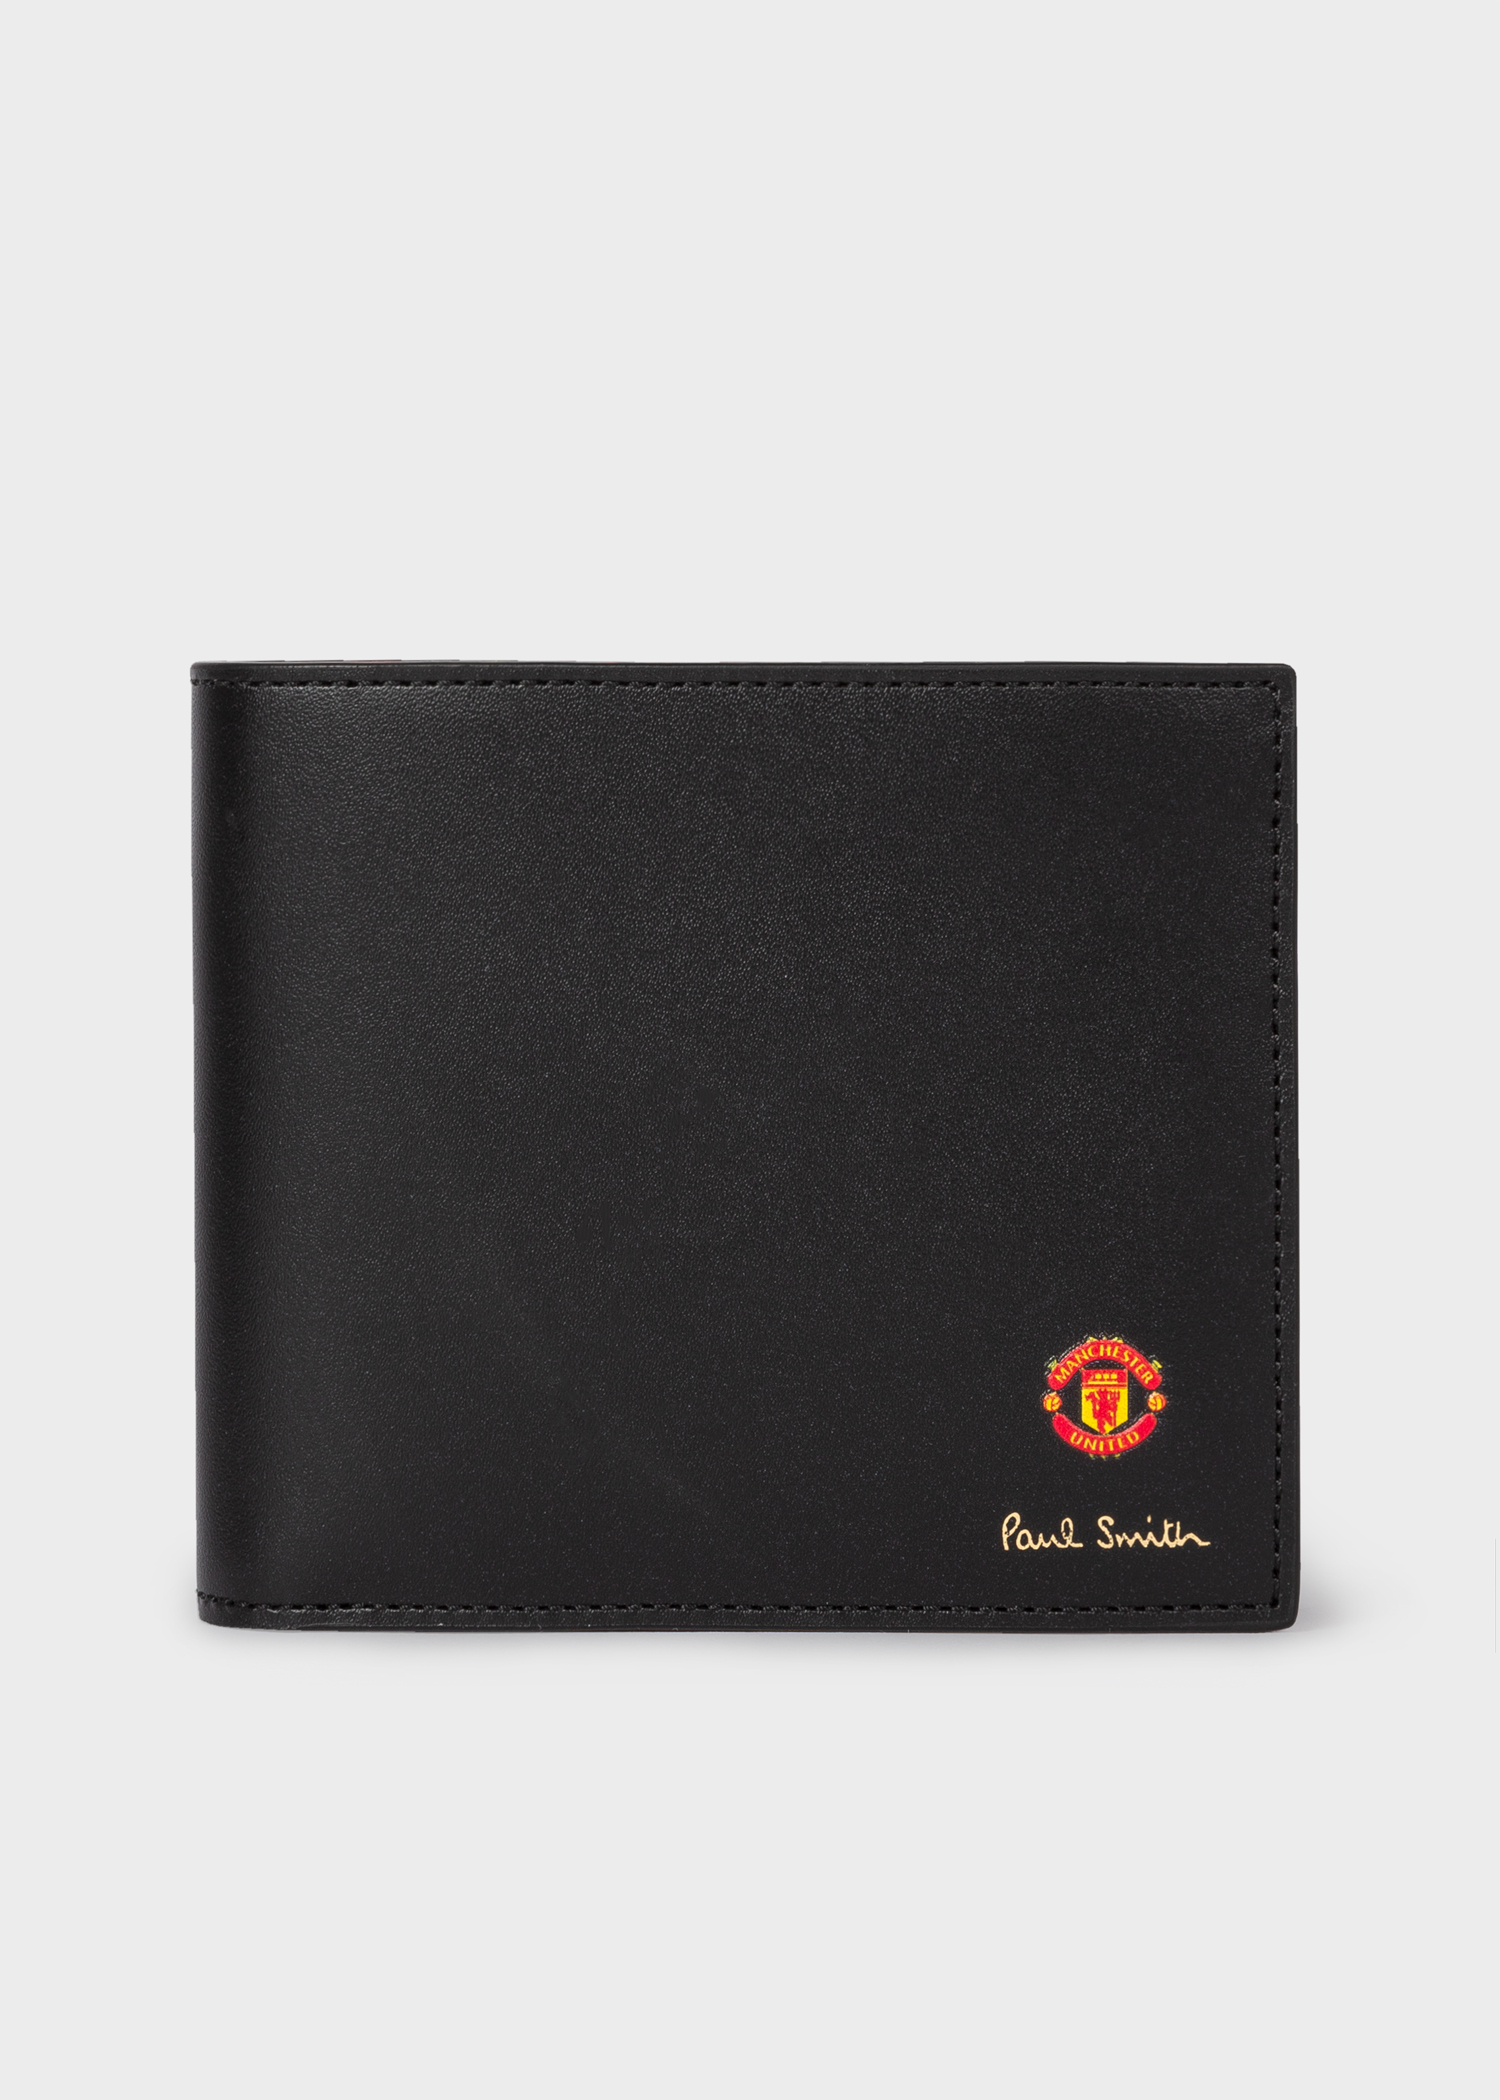 Manchester United T Shirts For Men